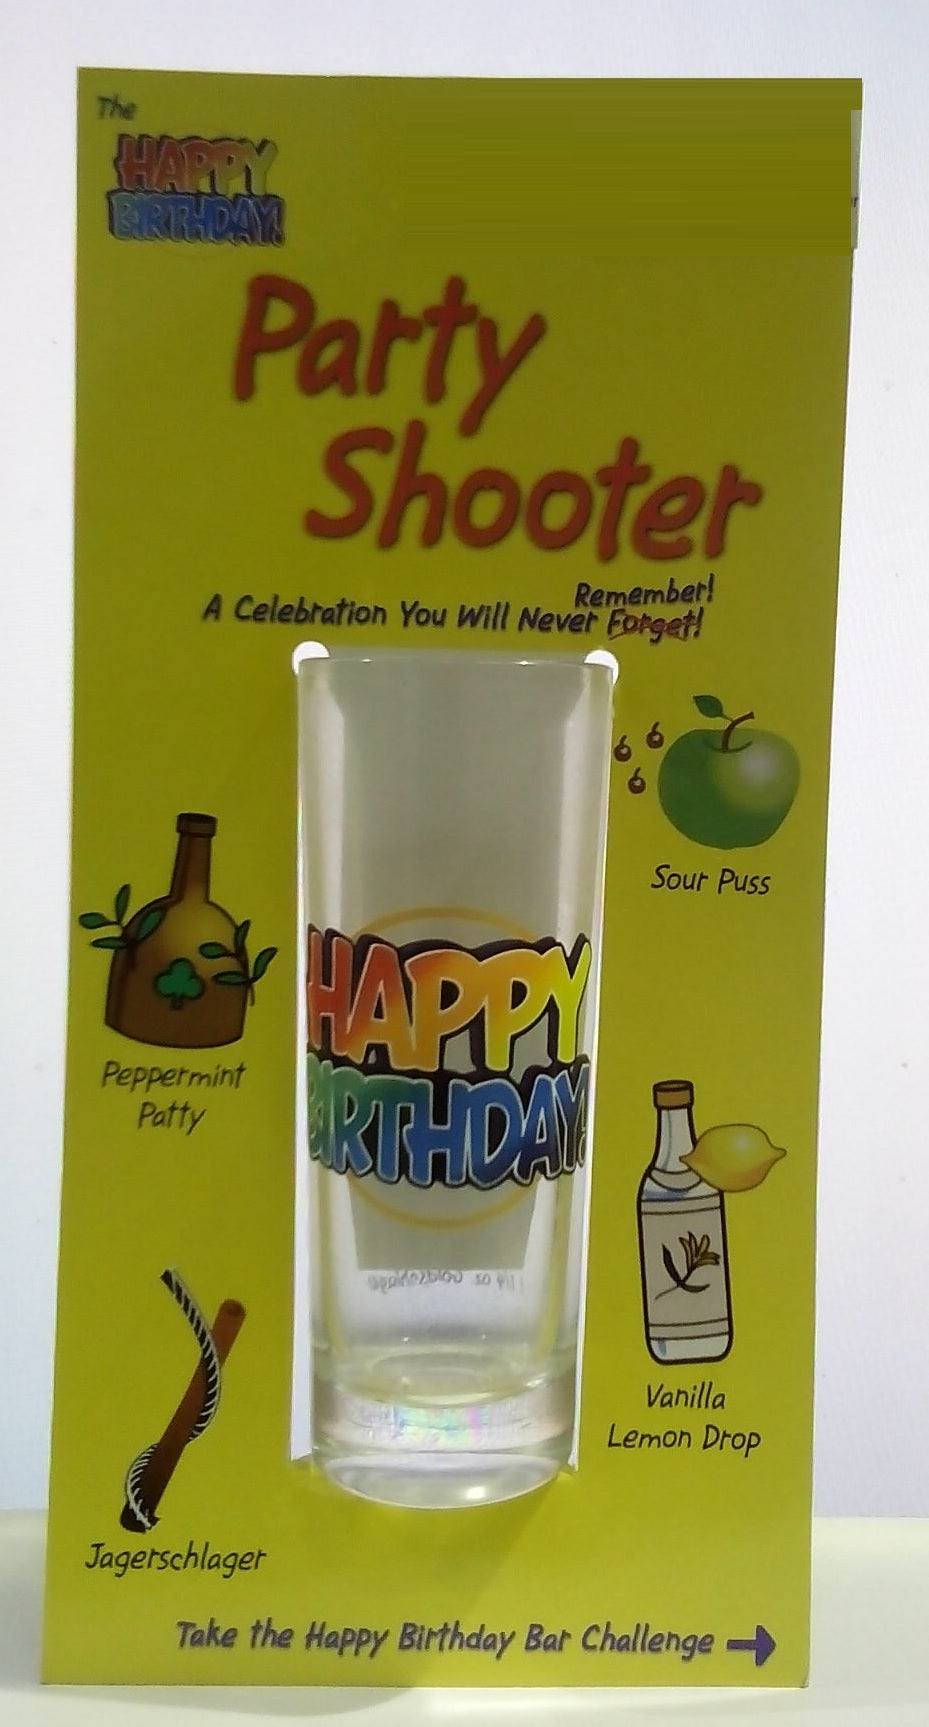 The Happy Birthday Party Shooter